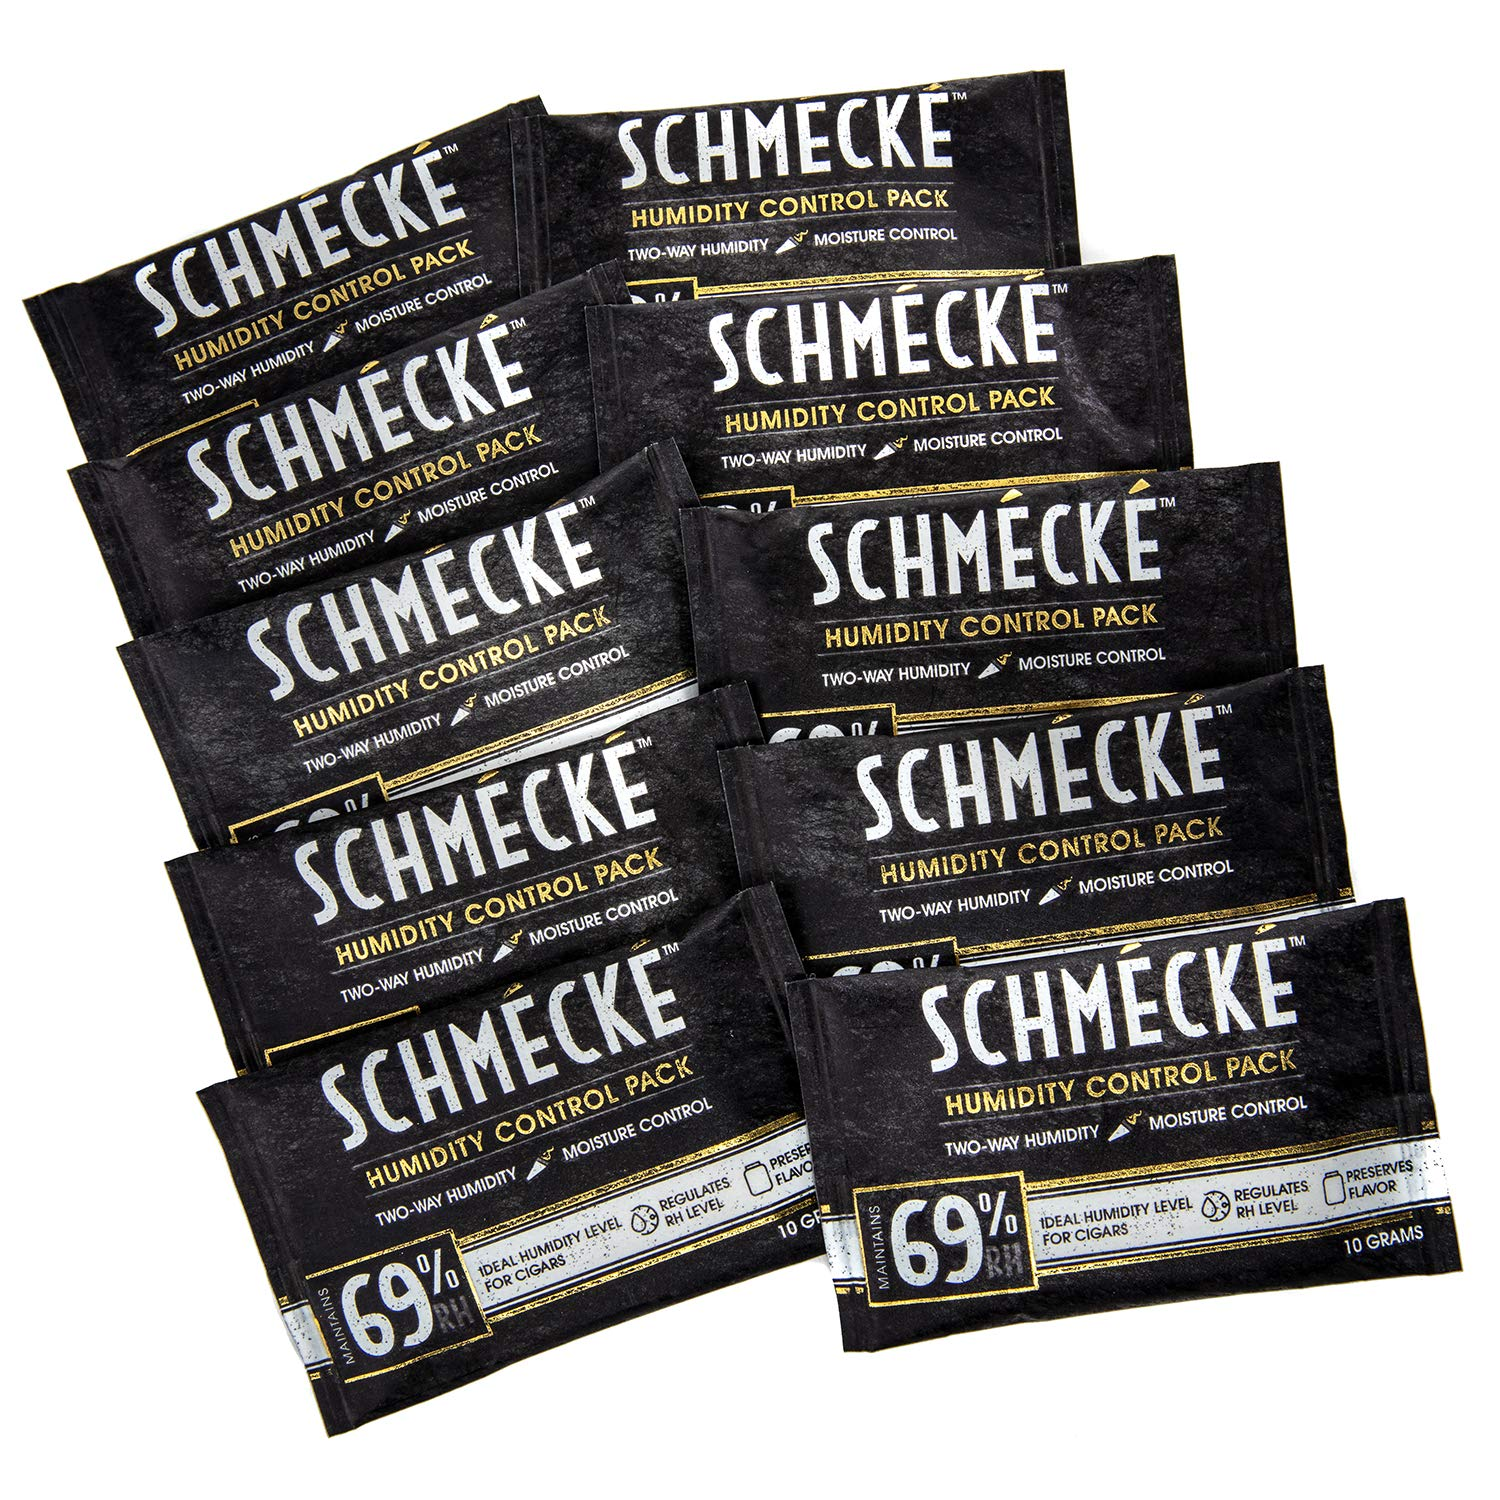 Schmécké 69% RH Cigar Two-Way Humidity Control 10 Grams x 10 Pack - Zero Guesswork - Regulate & Stabilize Humidor RH Level by Schmécké